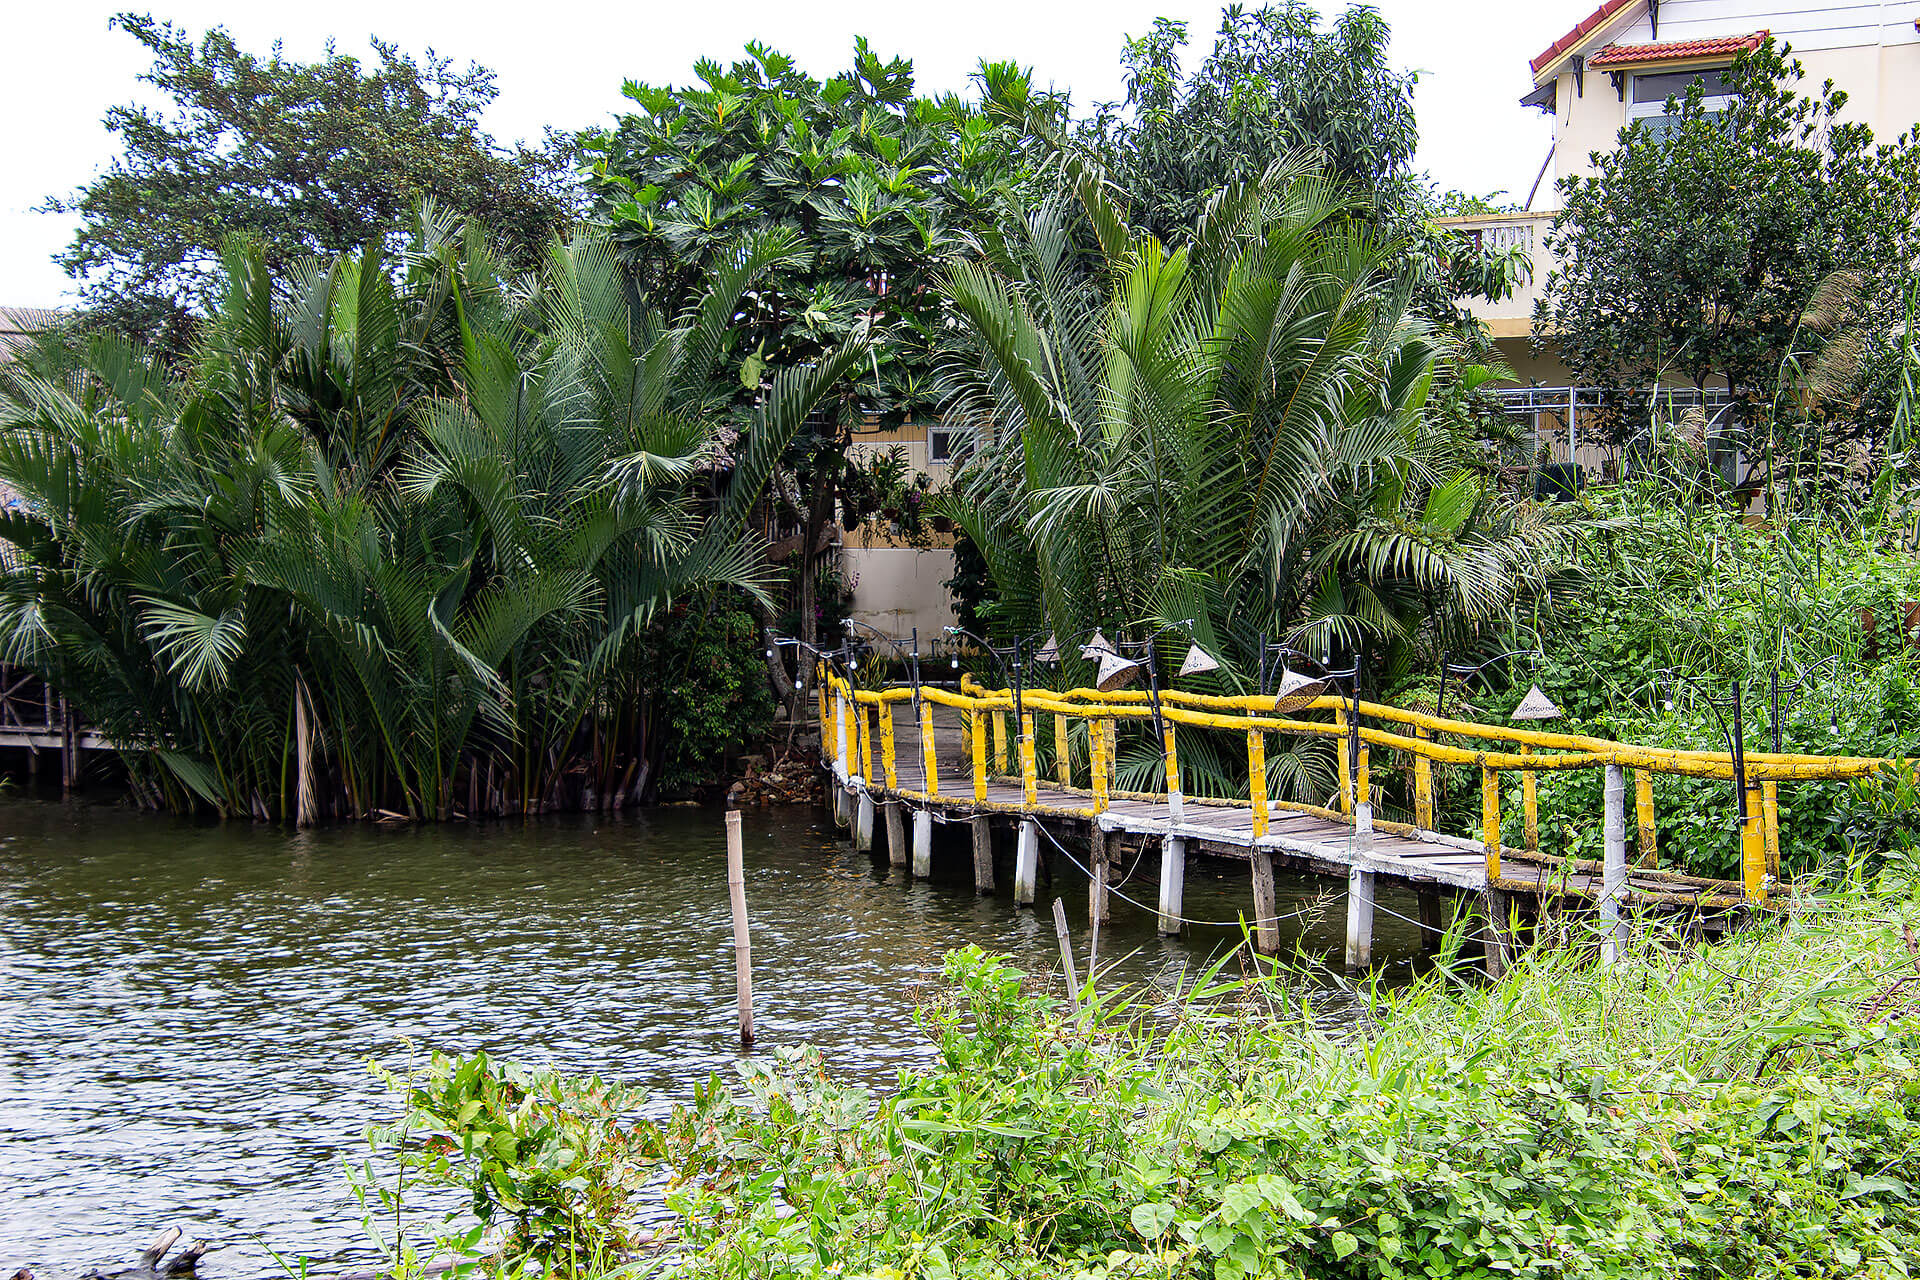 Water Coconut Palm Forest in Hoi An